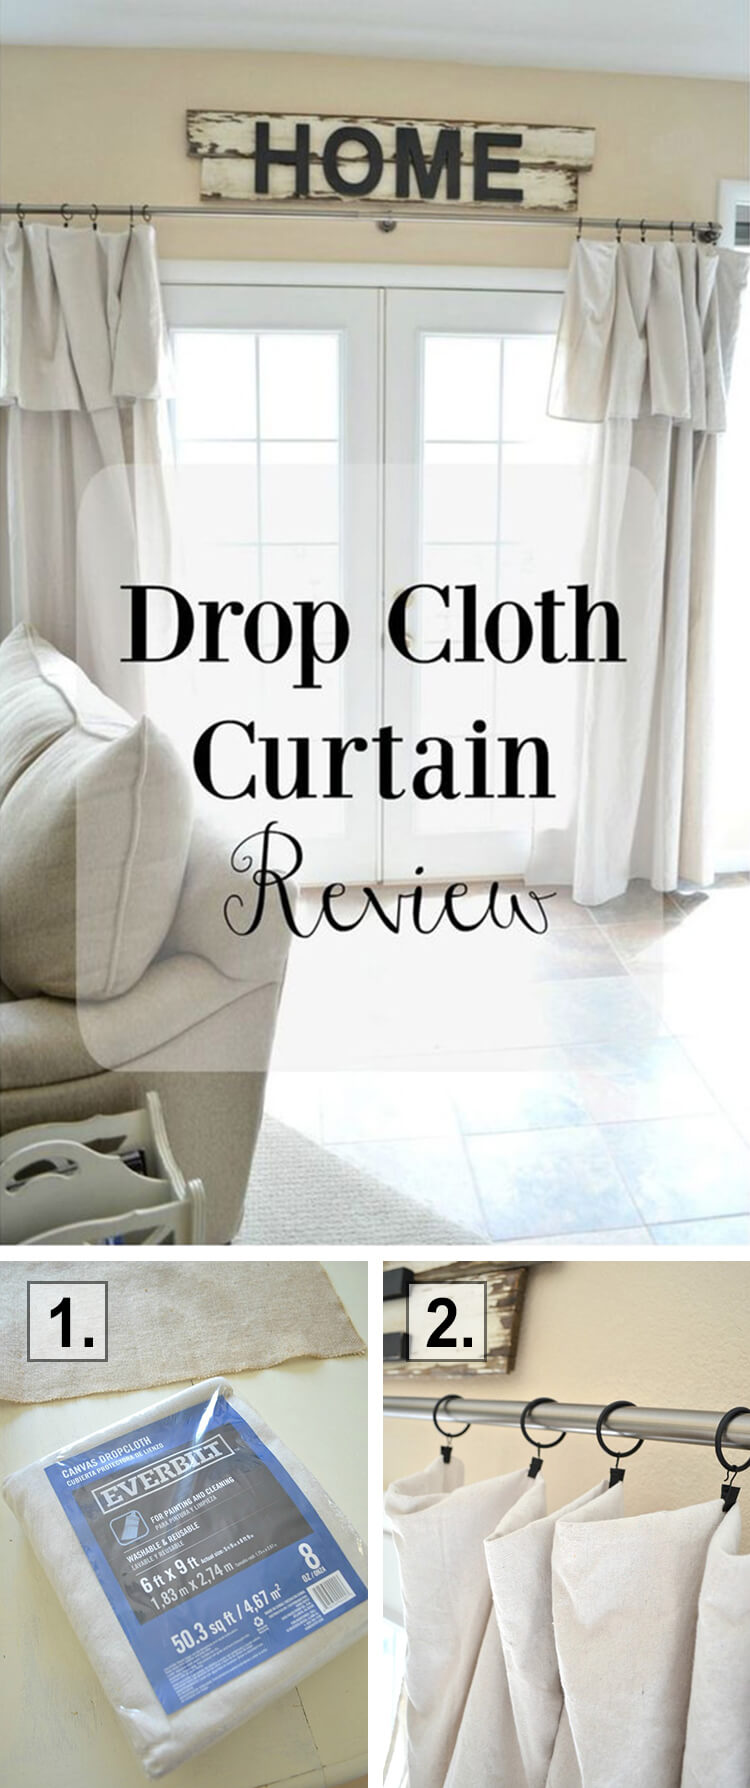 Custom Drapes from Drop Cloths